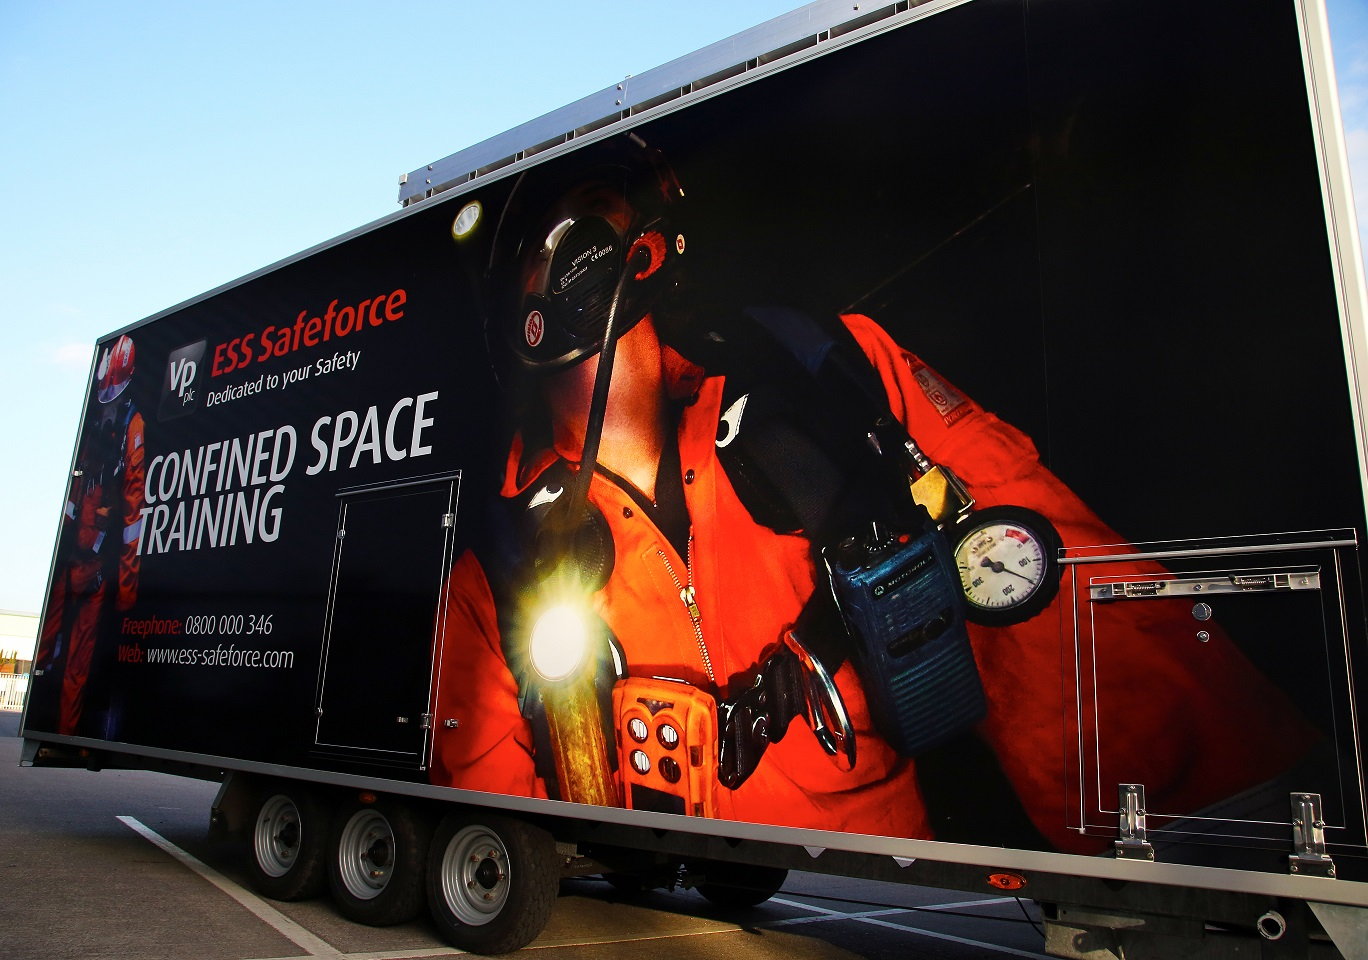 On-site Confined Space Training Unit